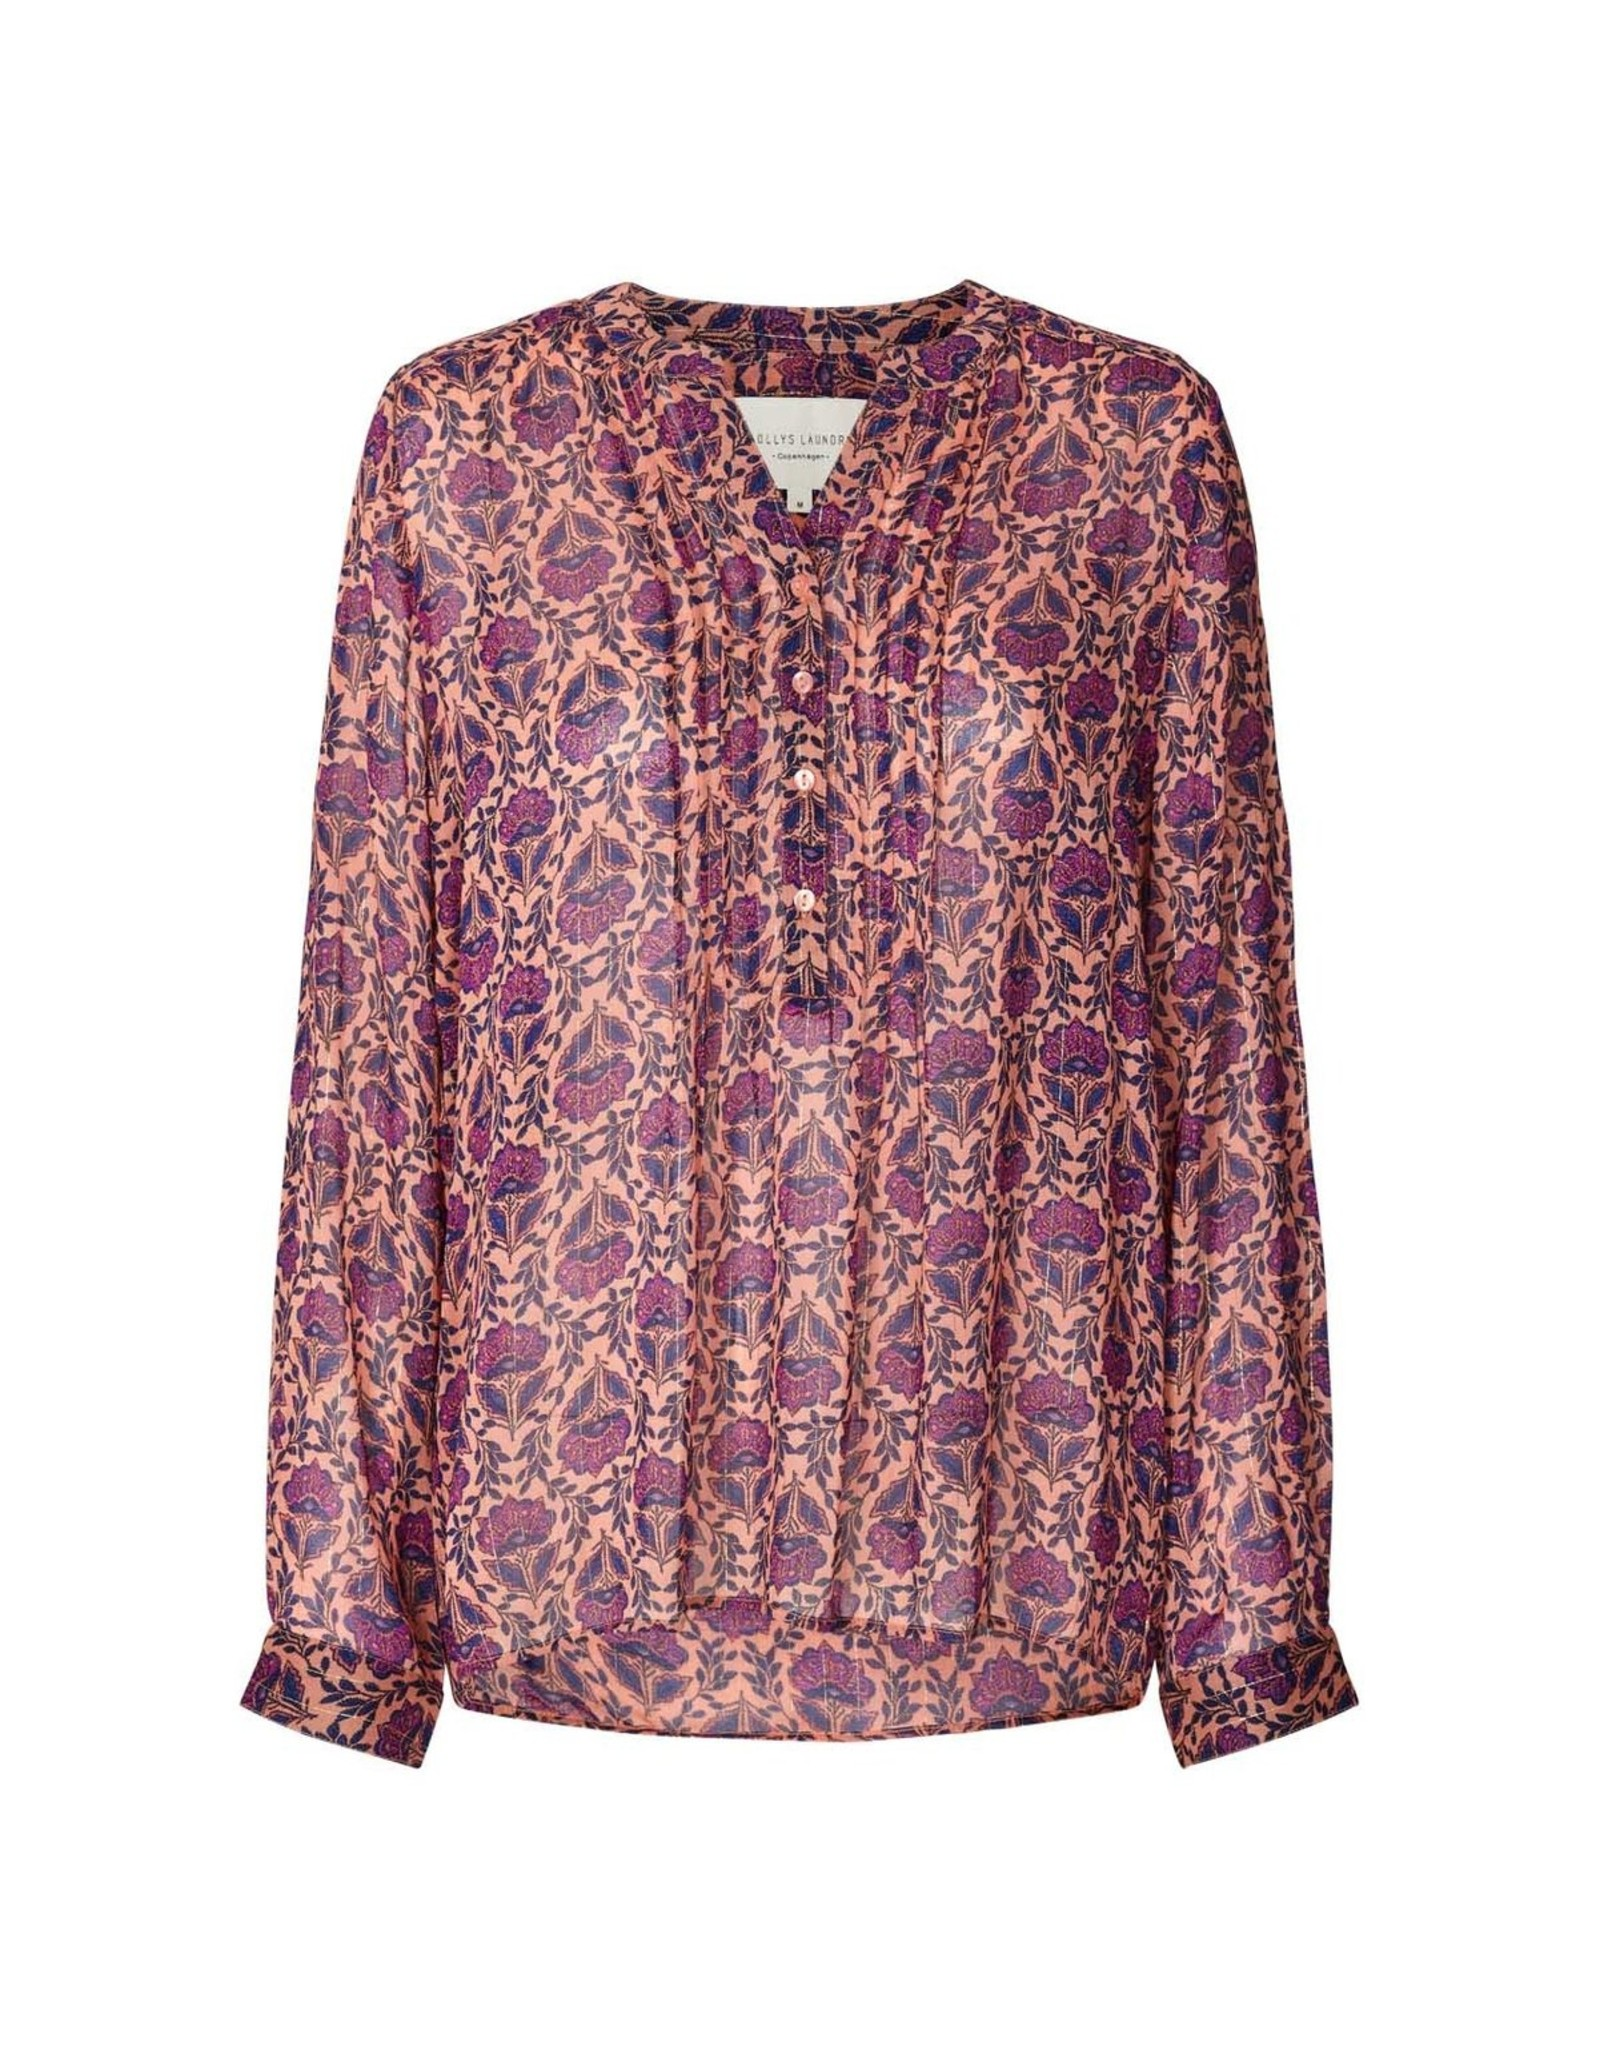 Lolly's Laundry Lolly's laundry - Helena shirt flower print